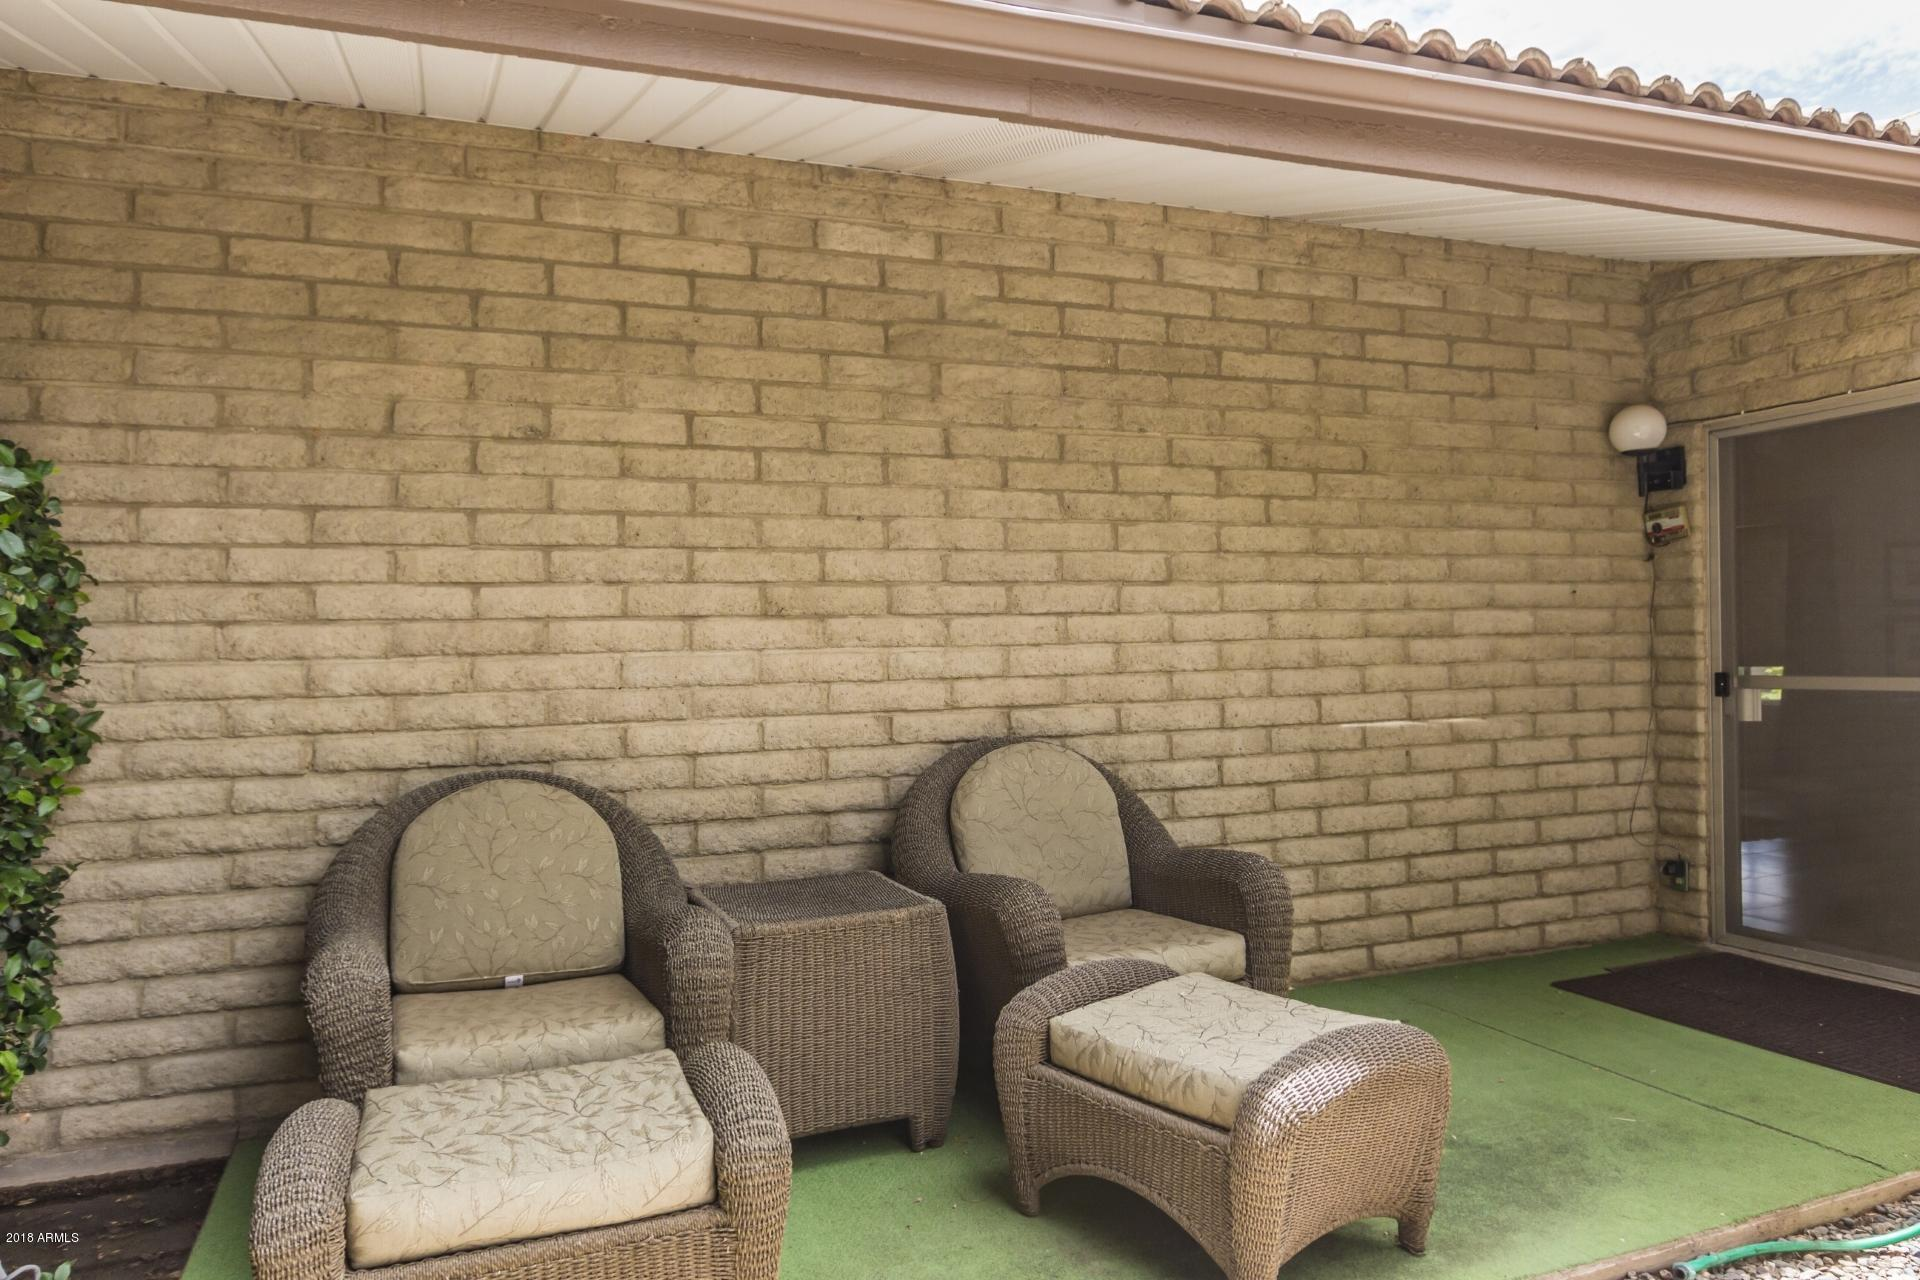 MLS 5815971 4800 N 68TH Street Unit 162, Scottsdale, AZ 85251 Scottsdale AZ Gated